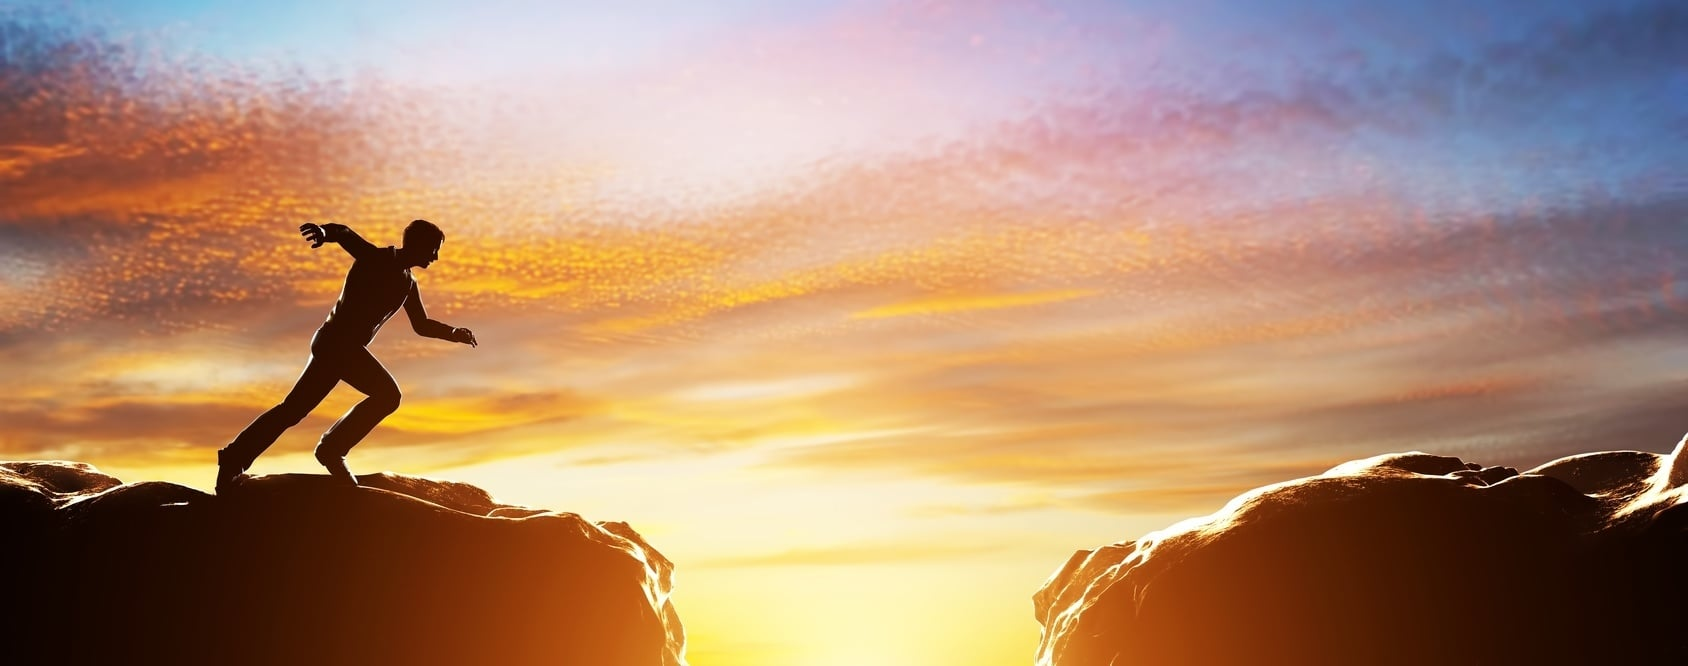 Silhouette_of_person_jumping_chasm_cliff_gap_sunset_action_challenge-006100-edited.jpg